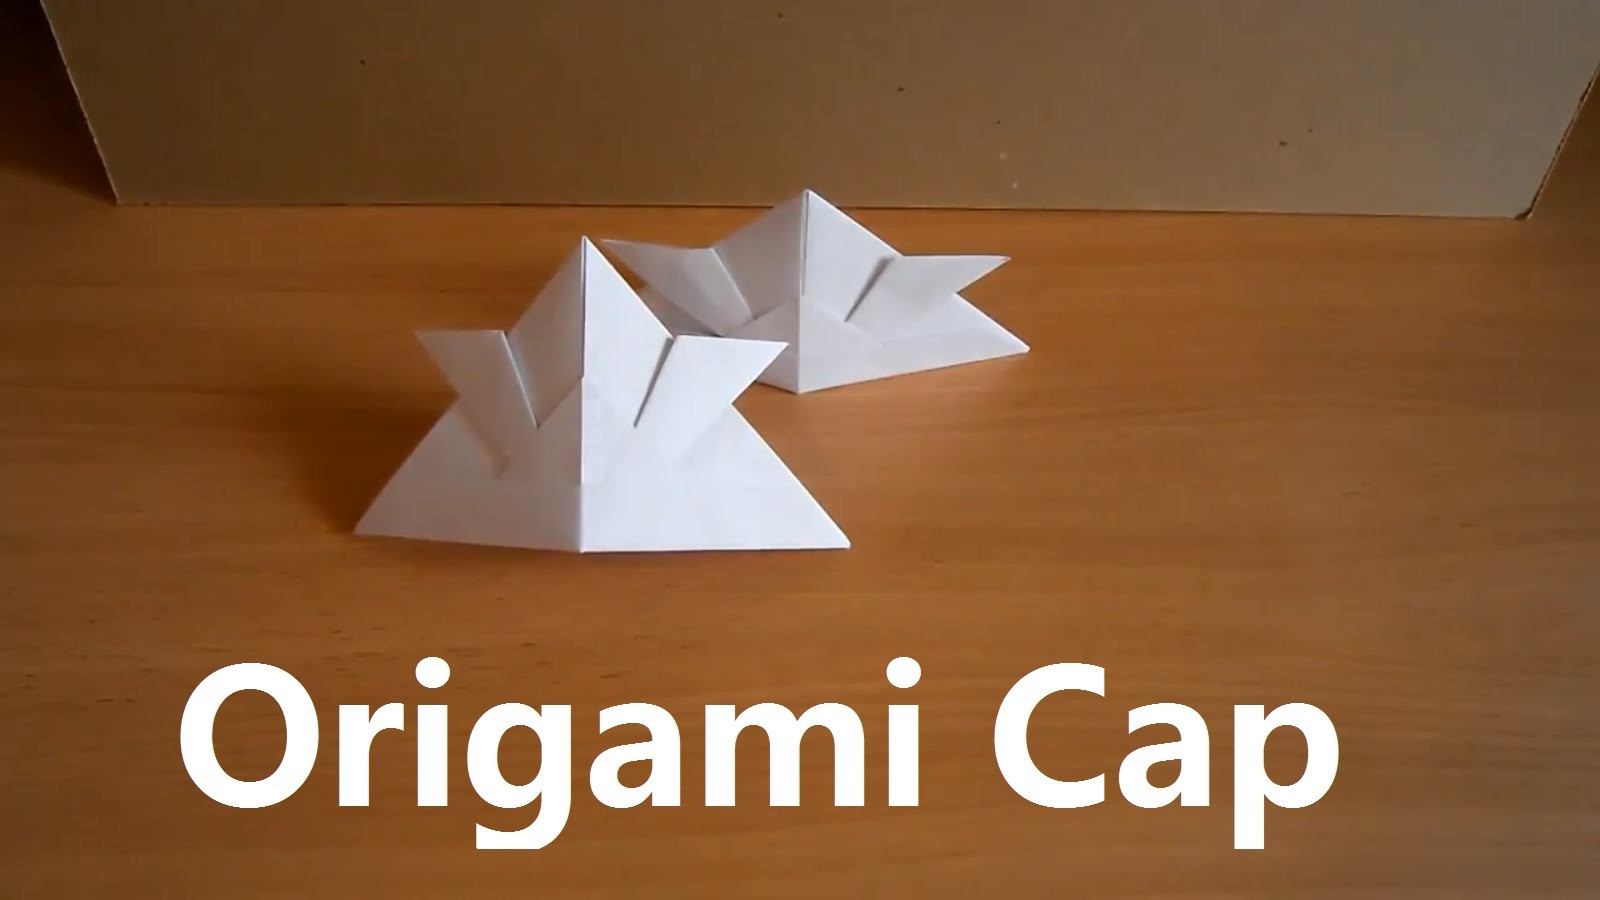 Origami cap. How to make a paper hat